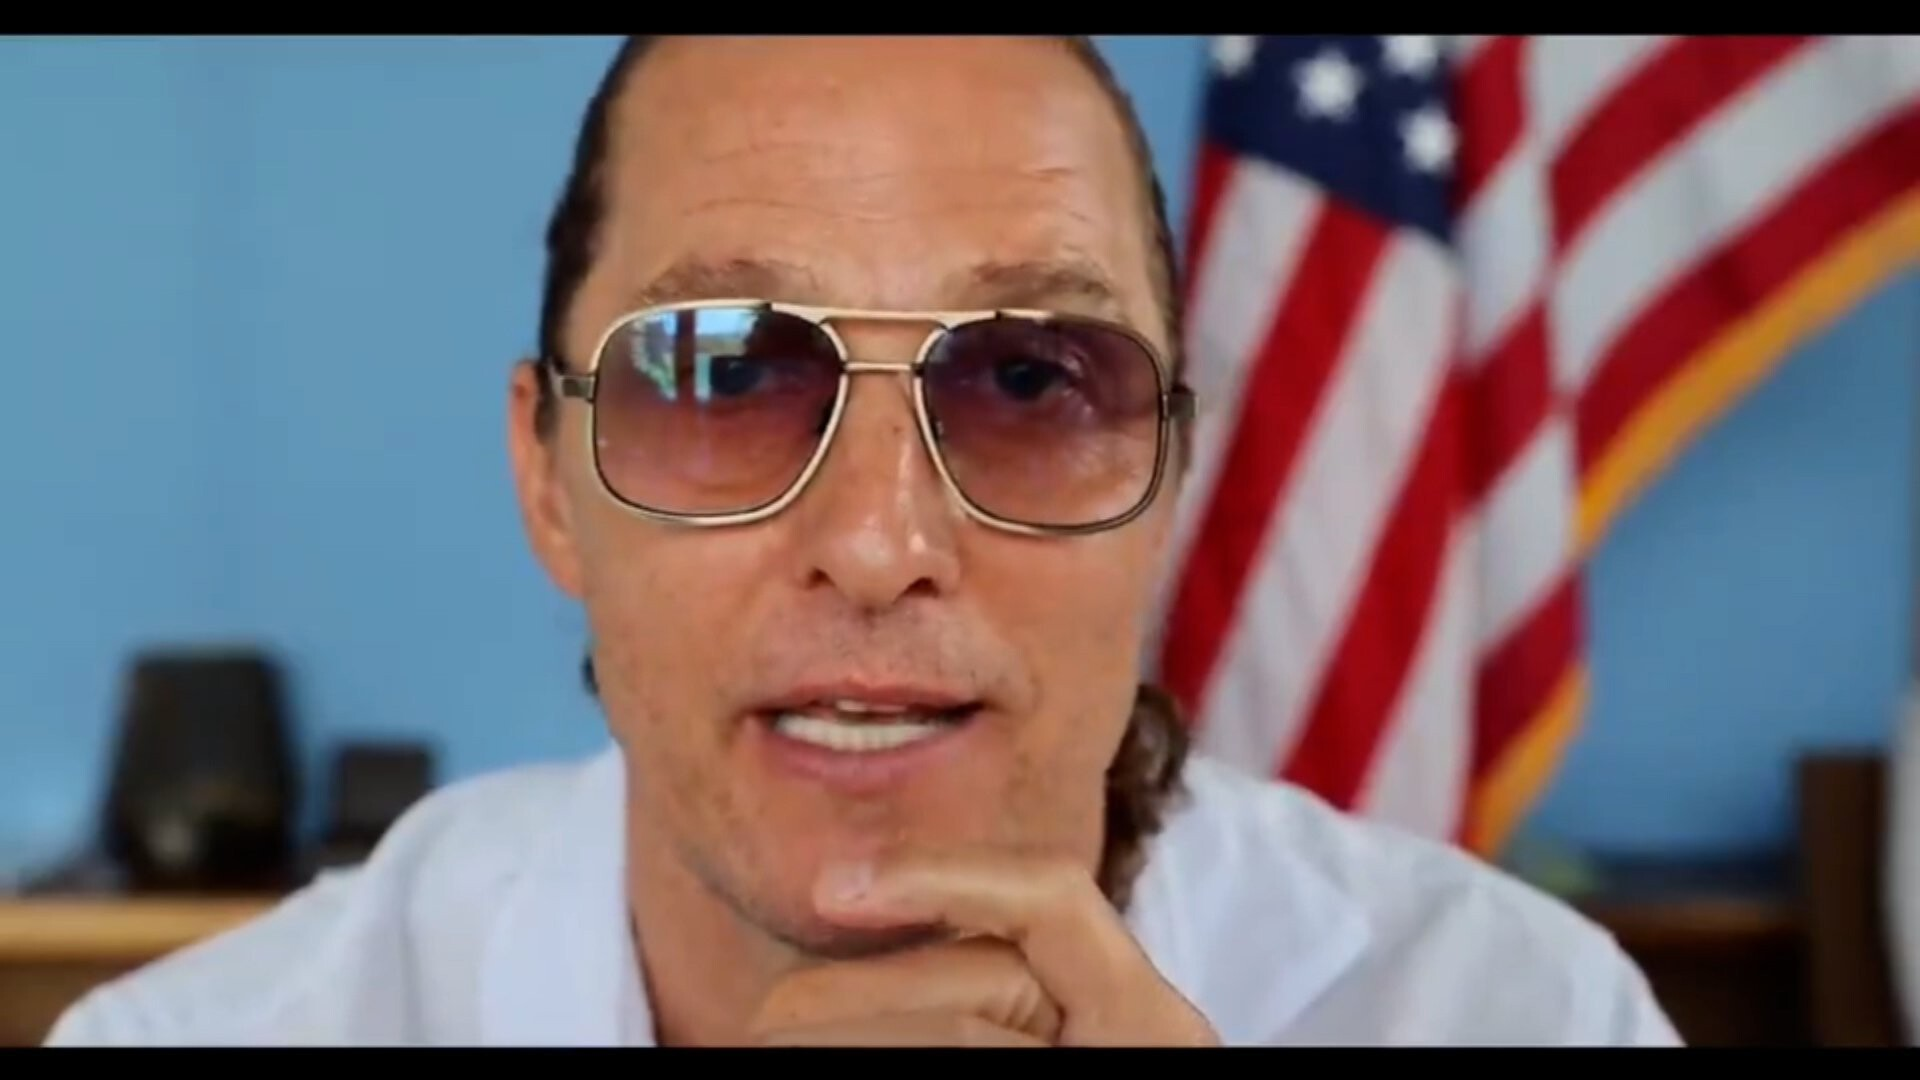 Matthew McConaughey declares America 'going through puberty' in Independence Day message